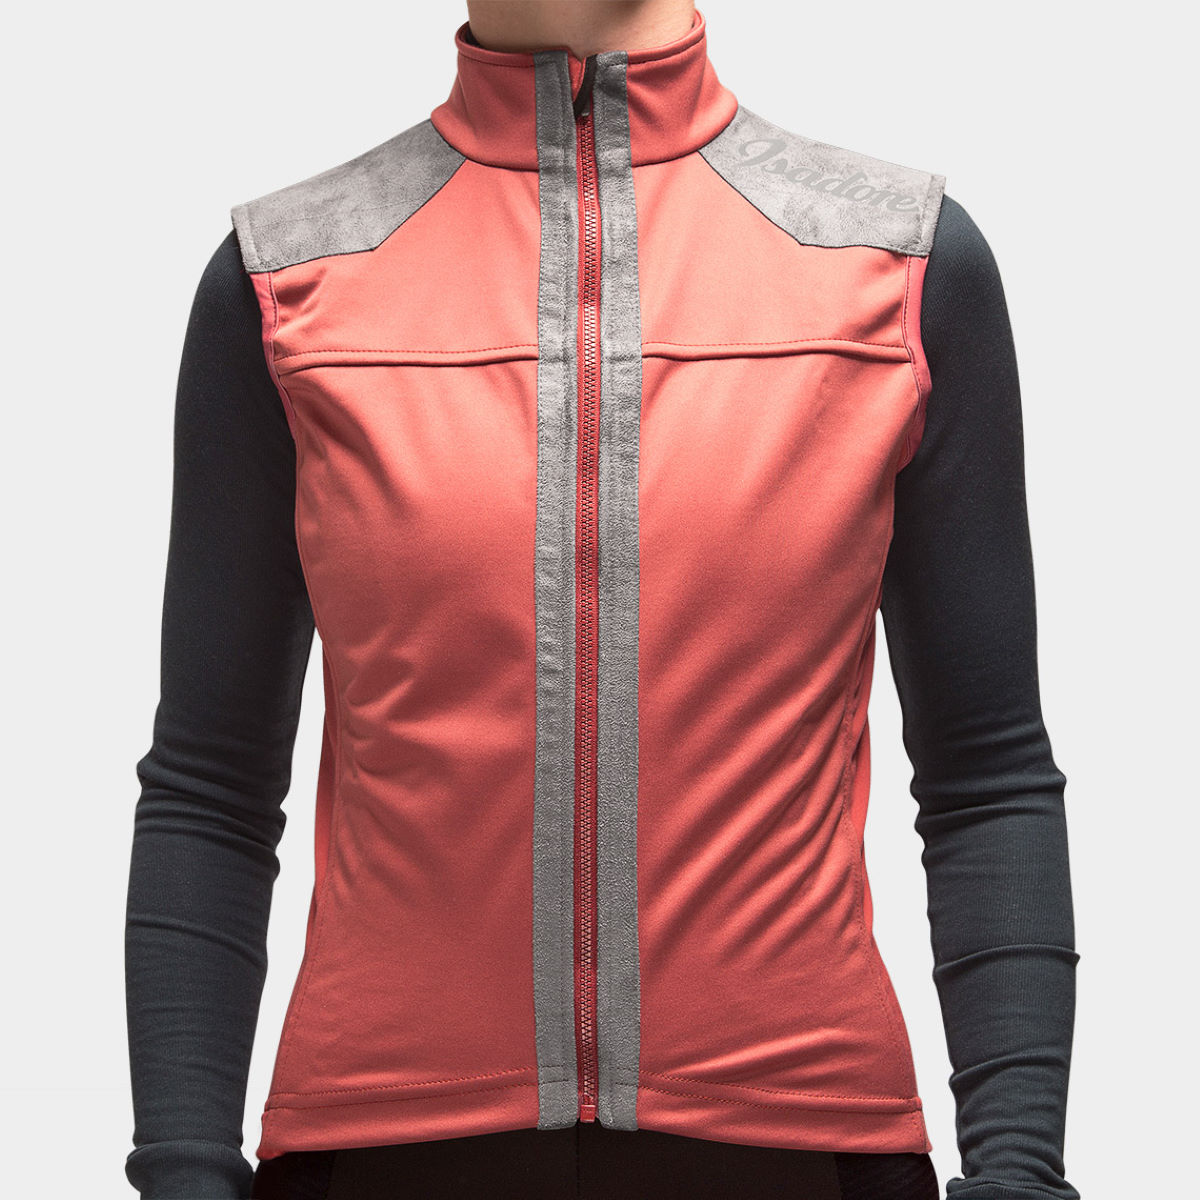 Gilet Femme Isadore Membrane Softshell (sans manches) - S Marsala